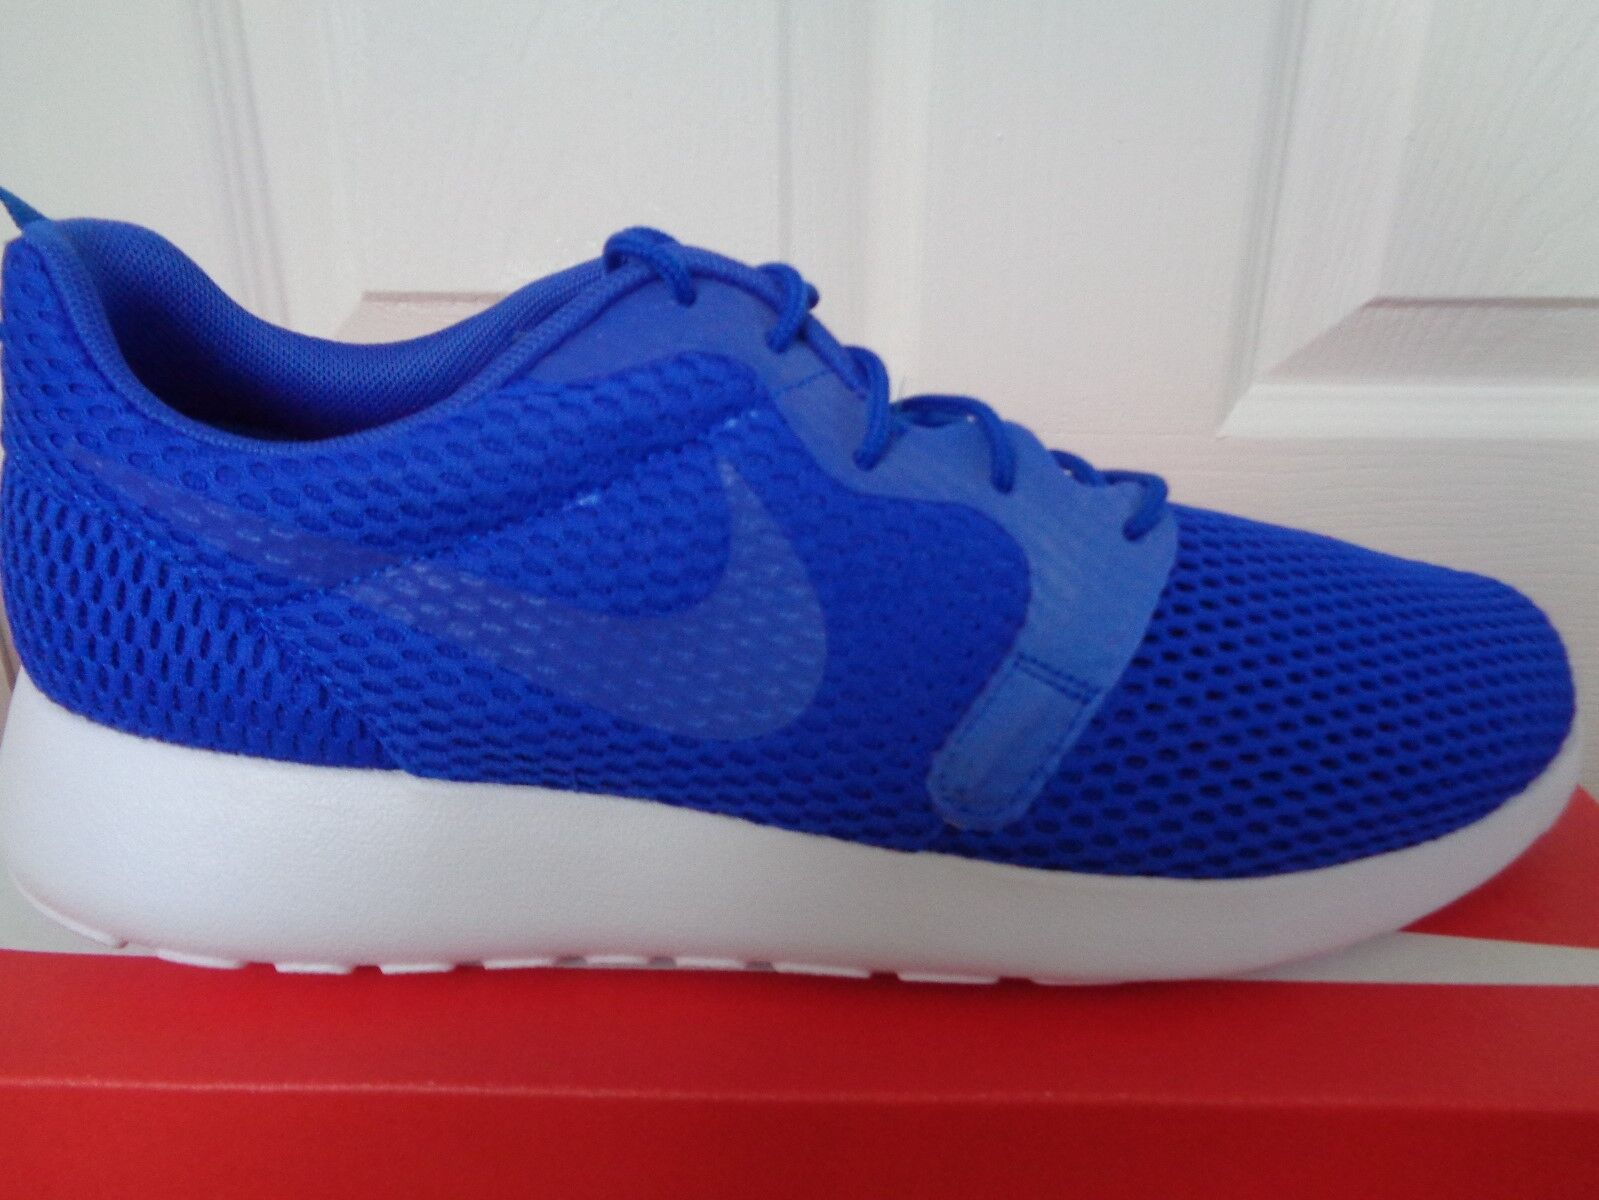 Nike roshe one HYP BR trainers sneakers 833125 401 eu 44 us 10 NEW+BOX